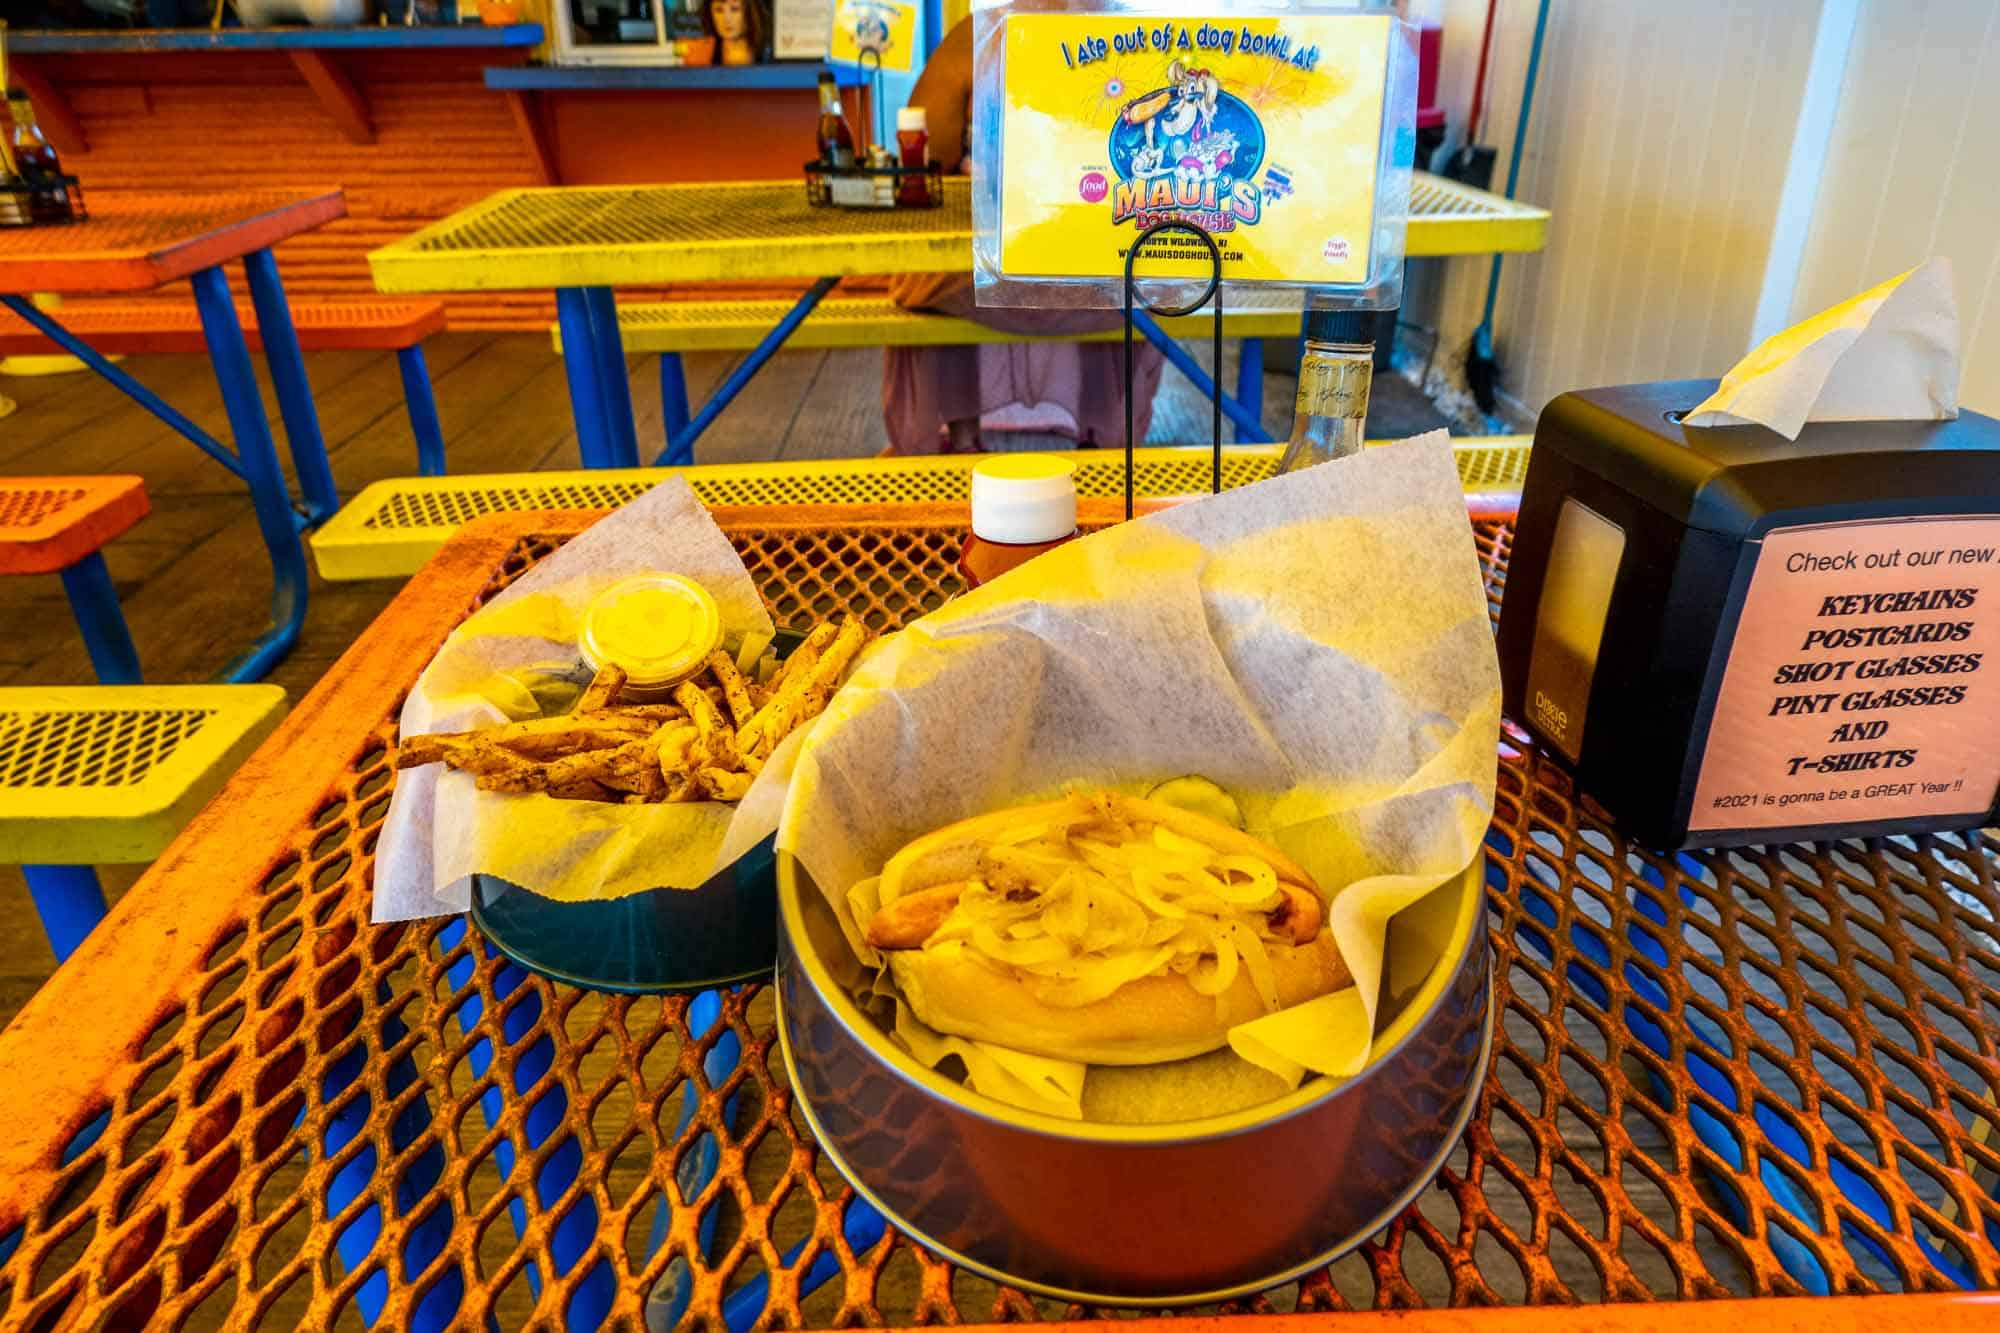 Hot dog and french fries served in dog bowl